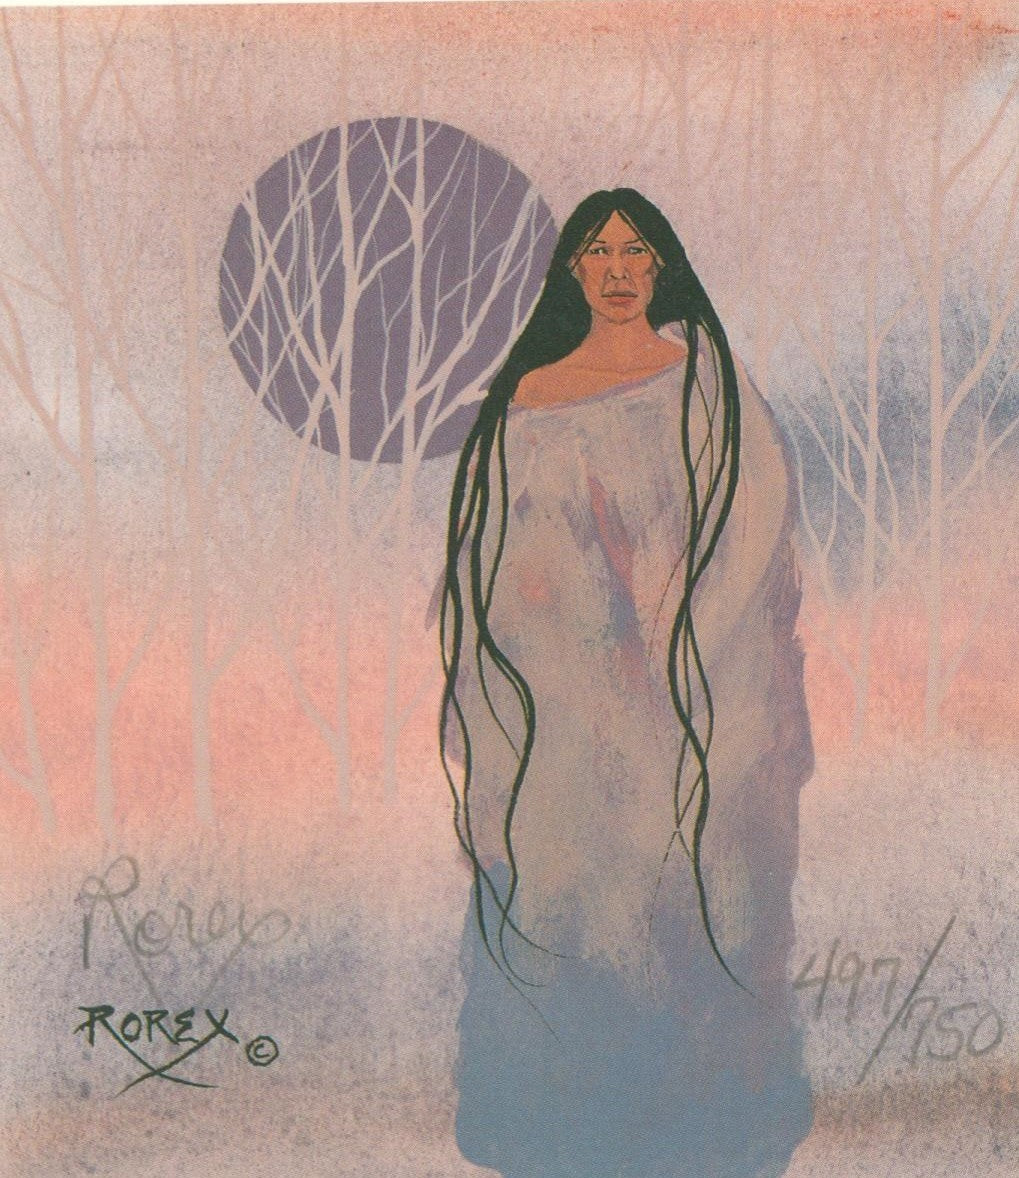 MISTY SCENE WITH LONG HAIR